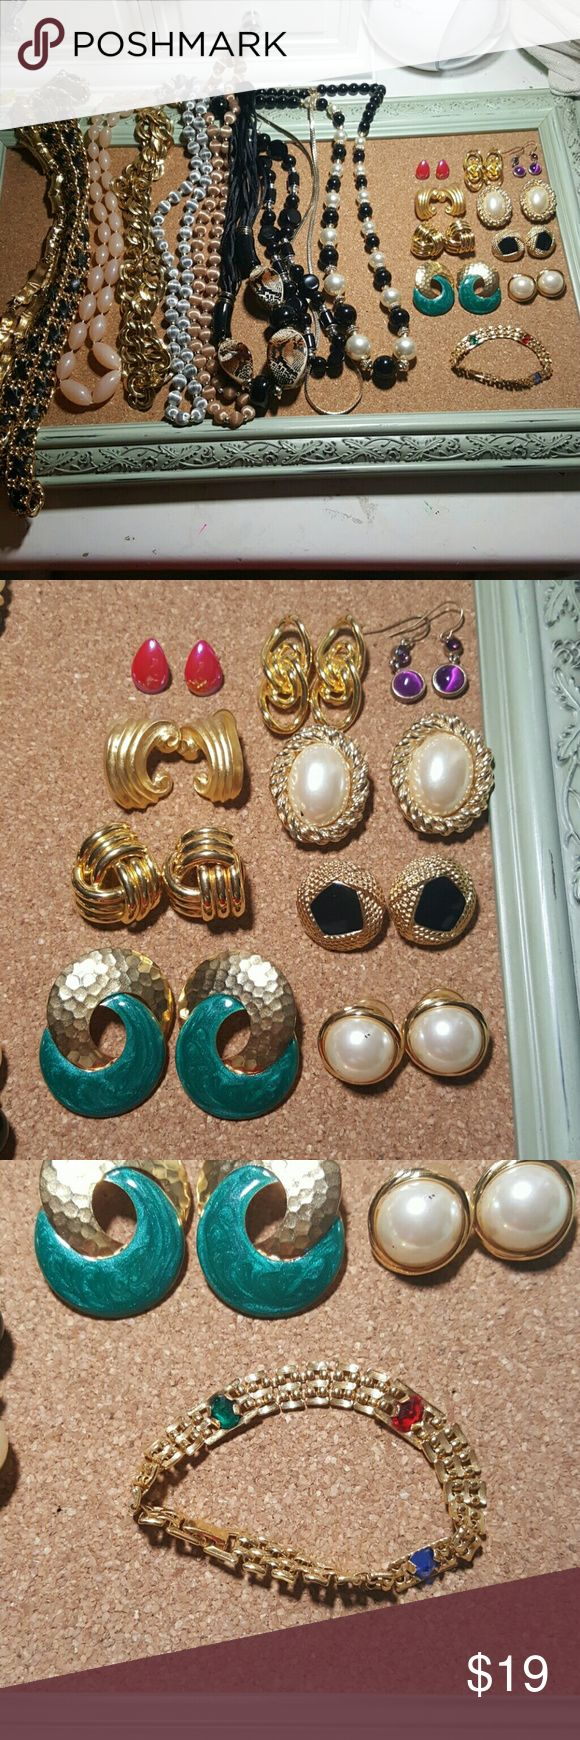 20 PC MASSIVE 80S JEWELRY BUNDLE Authentic jewelry from the 80s, straight from my aunt's closet. It's all in good condition and awesome for vintage looks. 9 pairs of earrings, 1 bracelet, 10 necklaces. Jewelry Necklaces